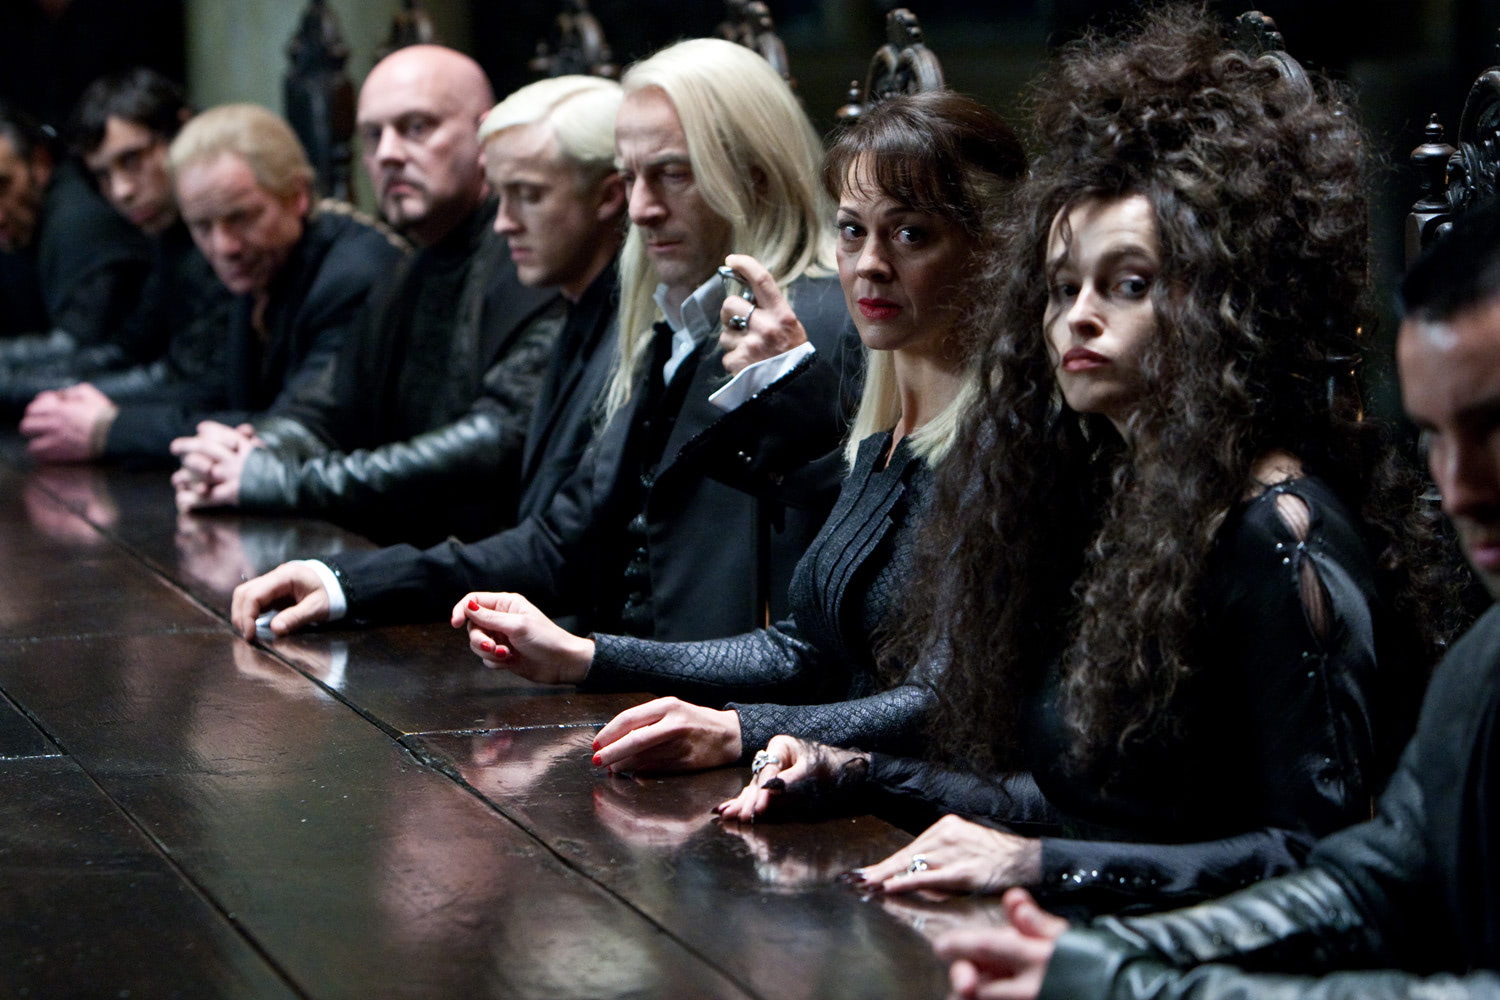 Death Eaters at Malfoy Manor